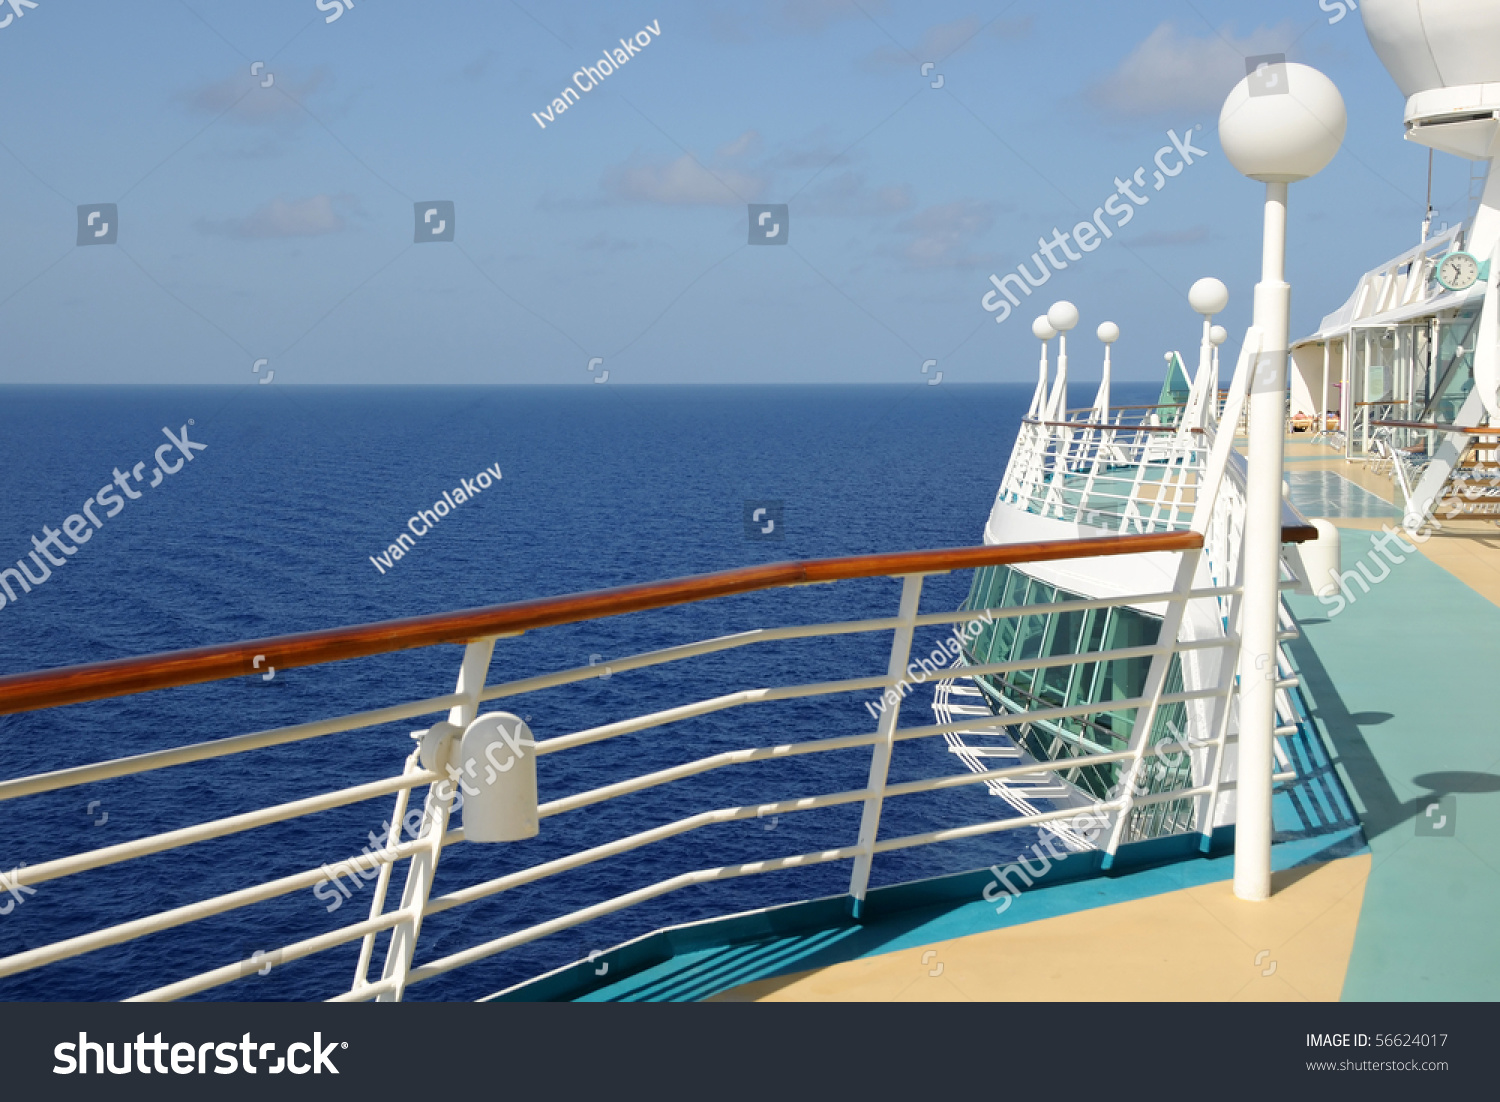 Sea horizon seen cruise ship balcony stock photo 56624017 for Cruise ship balcony view